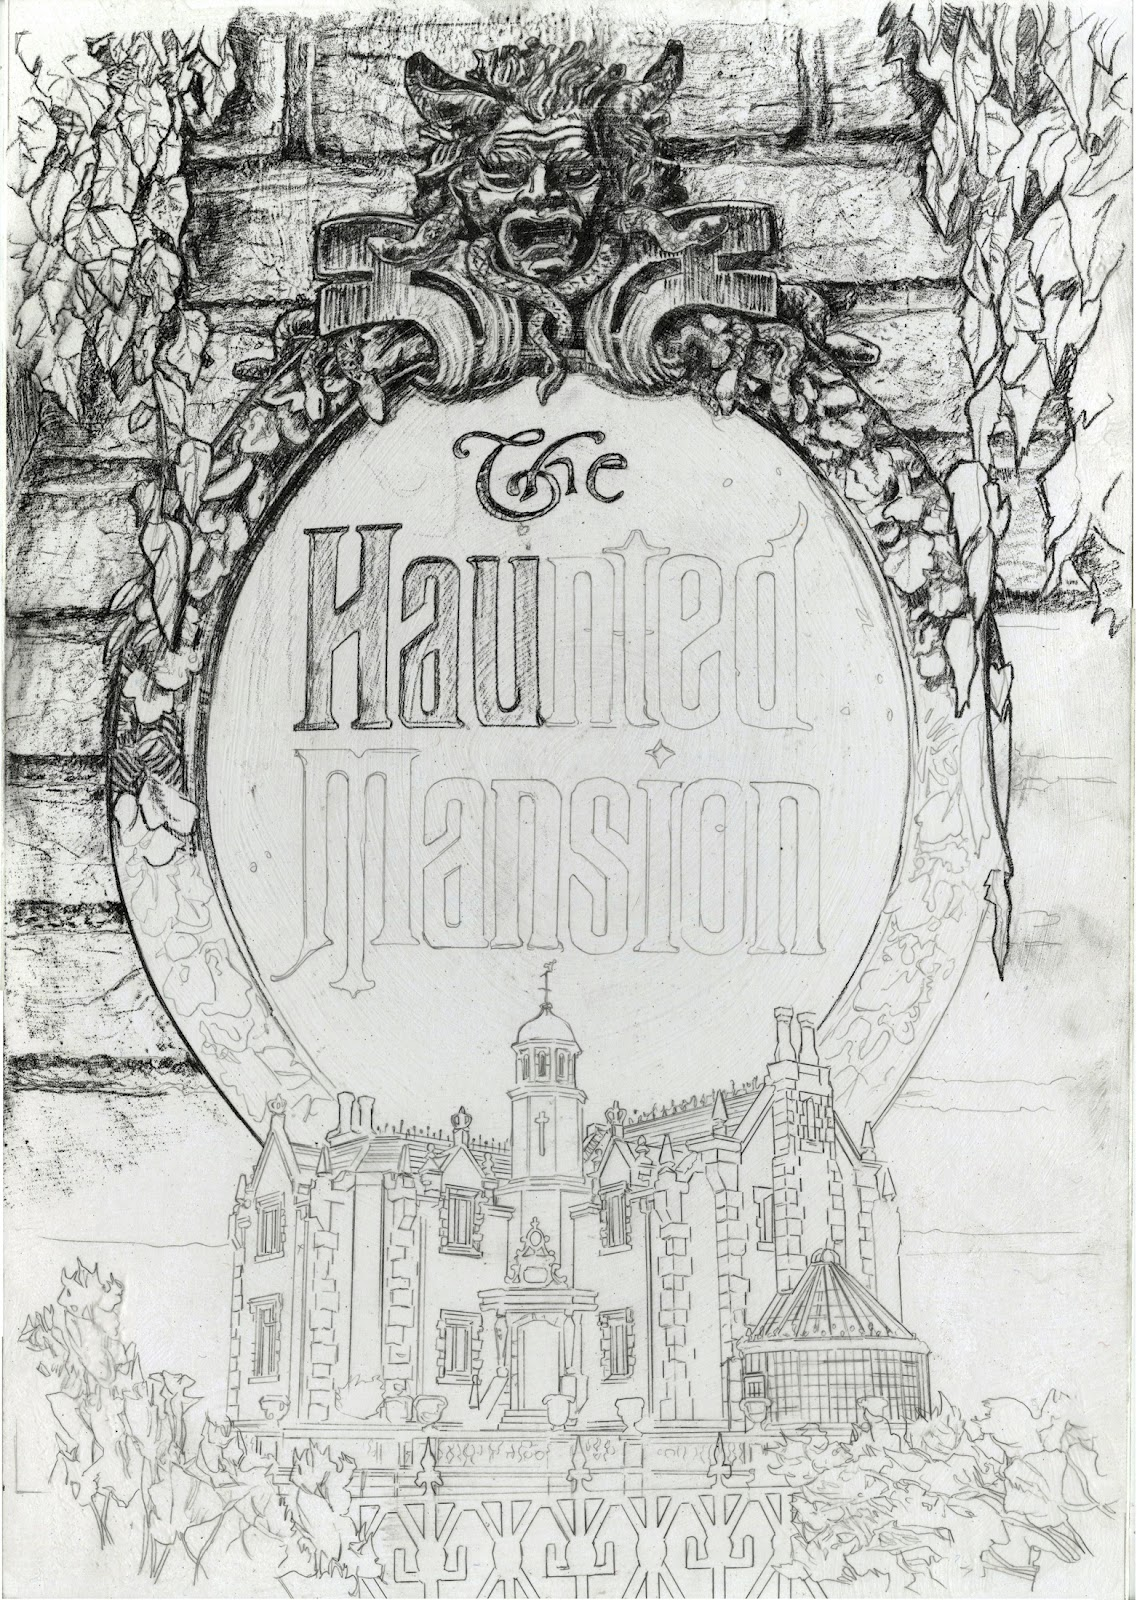 Mansion Drawing: Imagetalker-Dove.: A Haunted Mansion On My Drawing Table